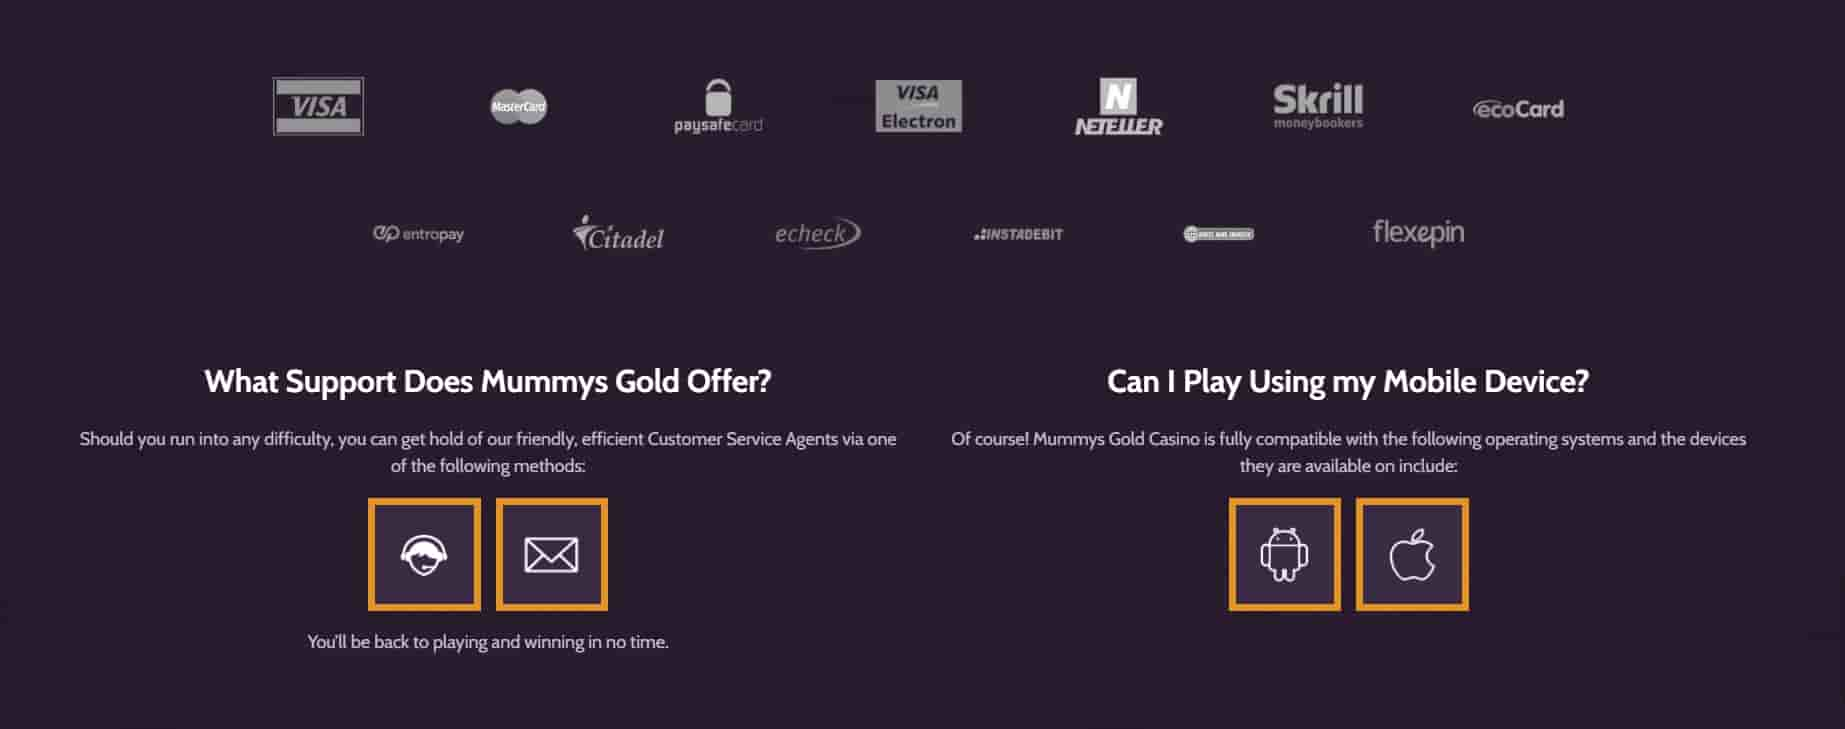 Mummys Gold Casino deposits